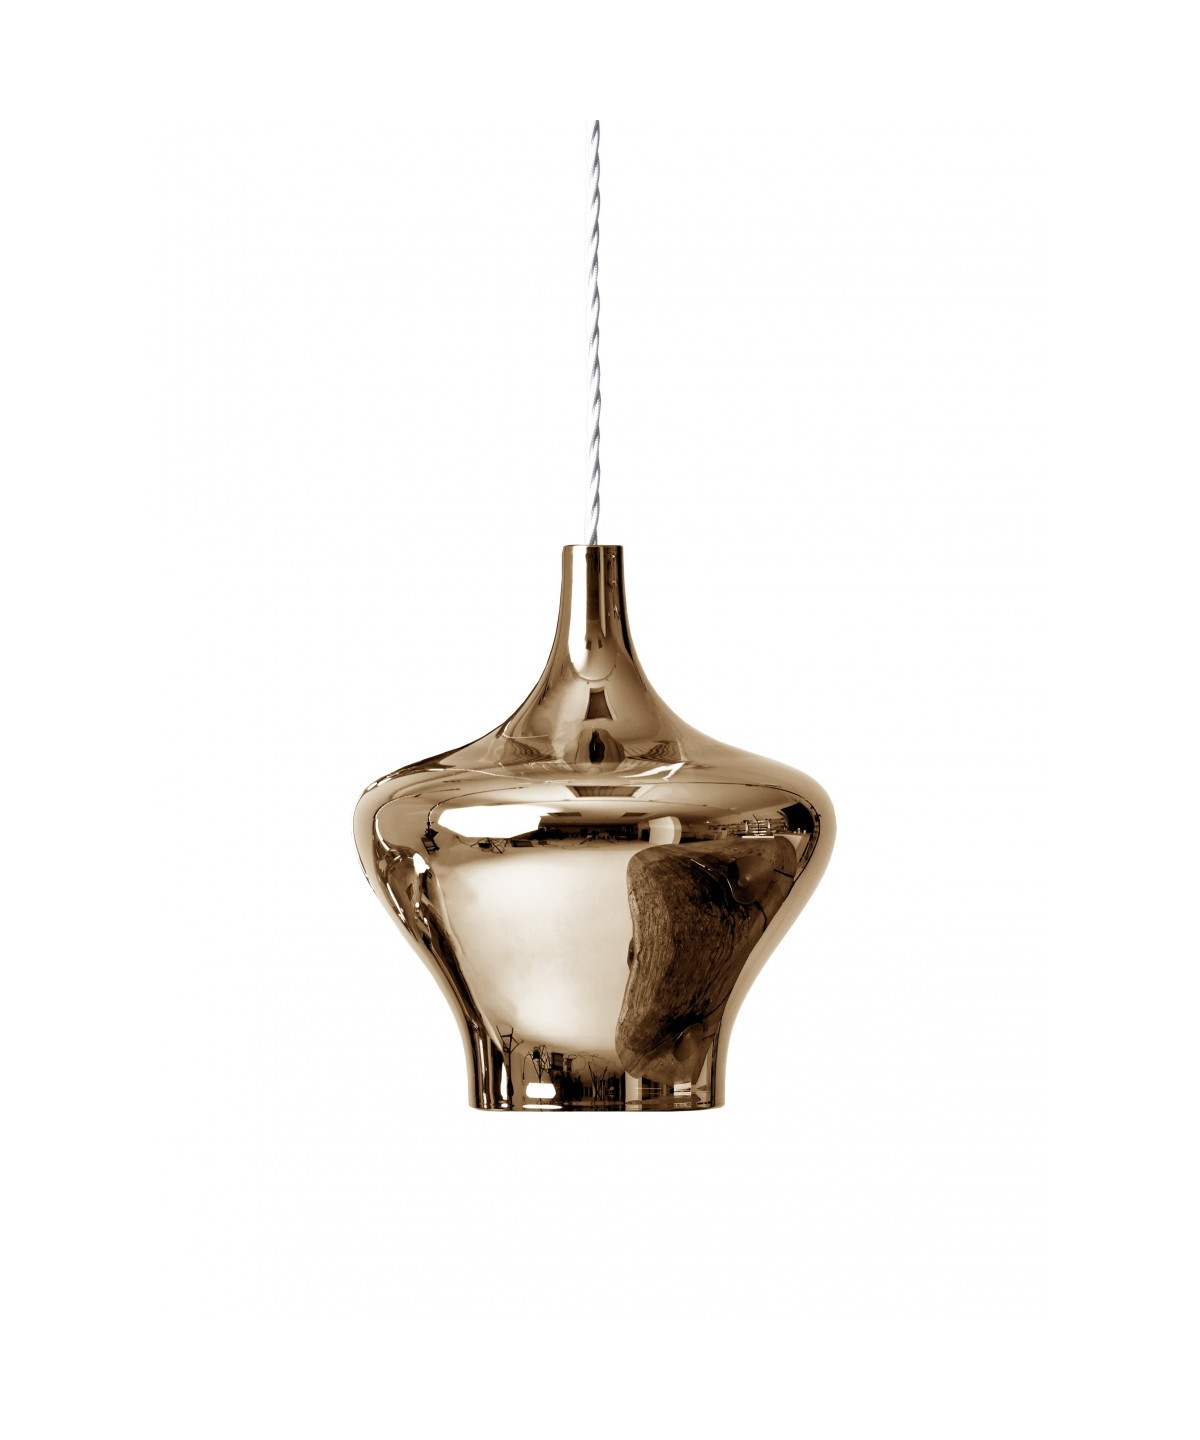 Nostalgia Pendel SO2 Rose Gold - Studio Italia Design